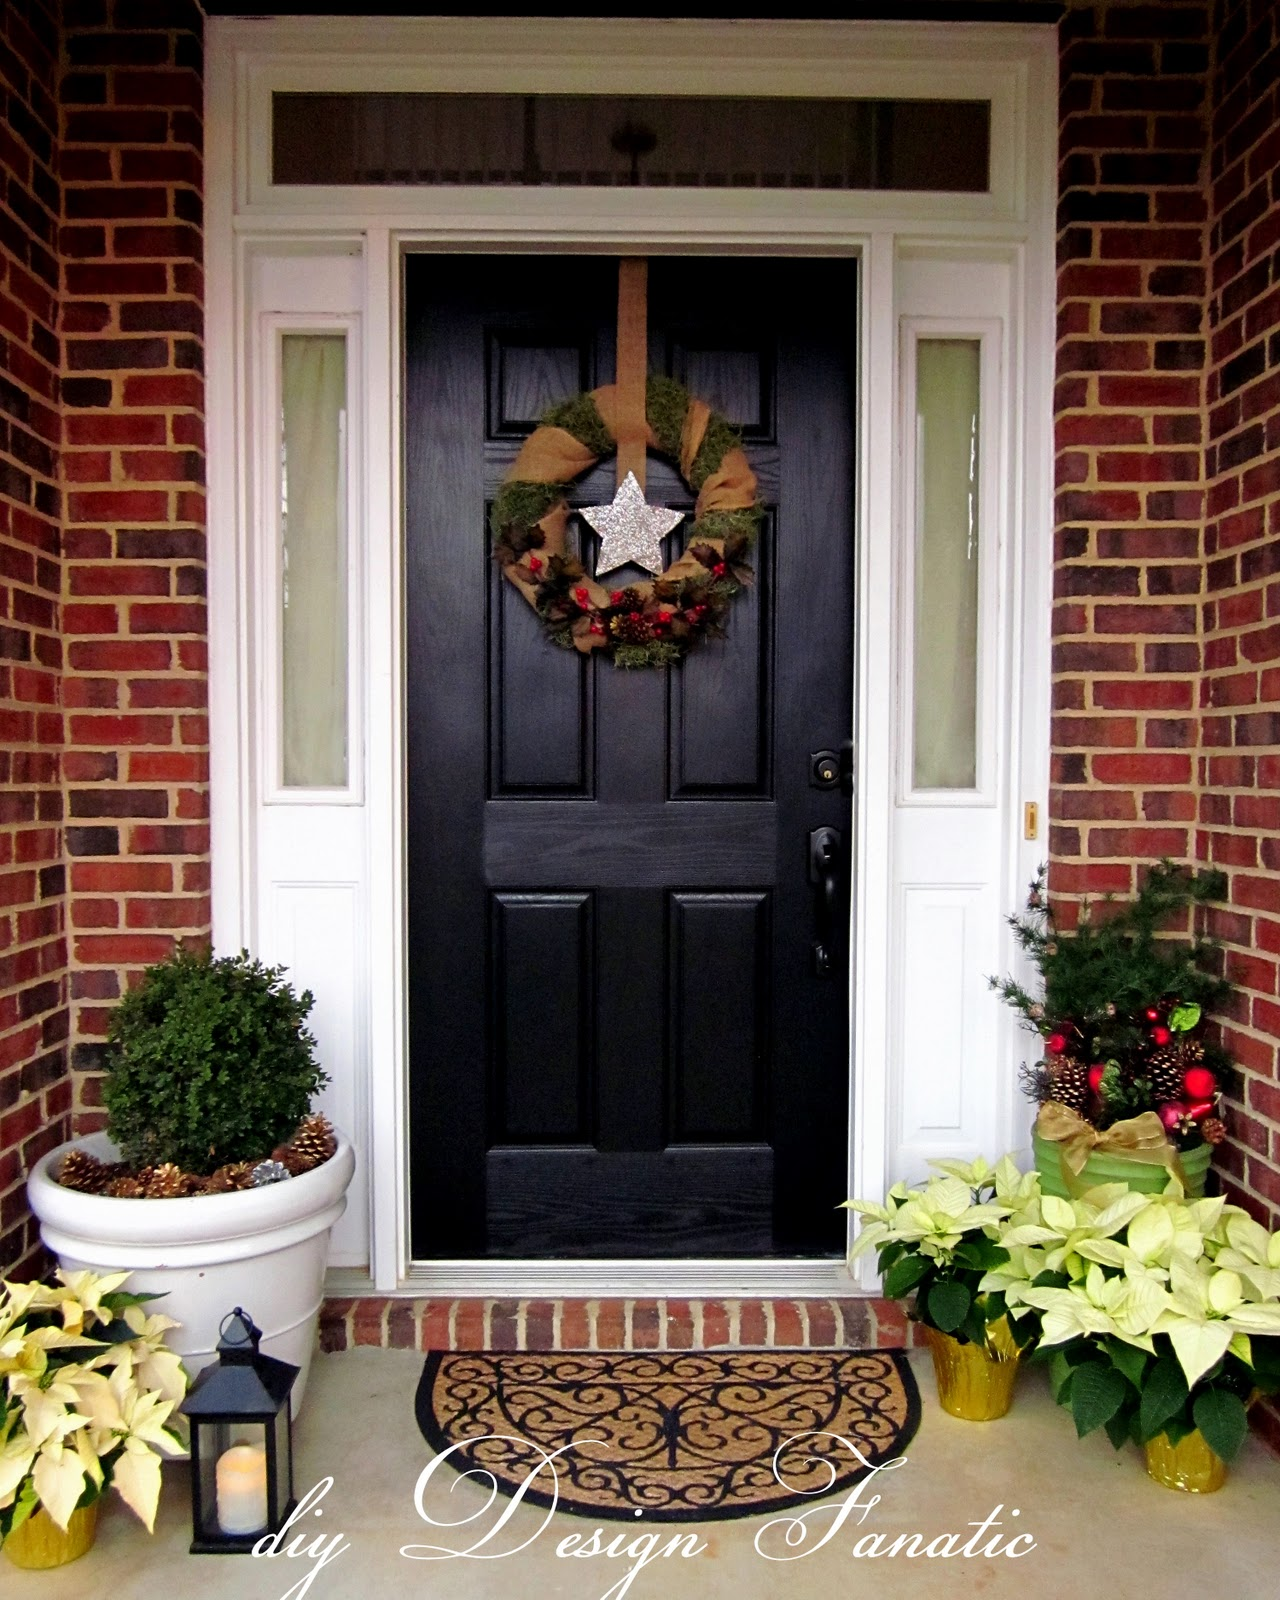 Garland For Front Door: I Might Put Up Some Lighted Garlands A Round The Door And